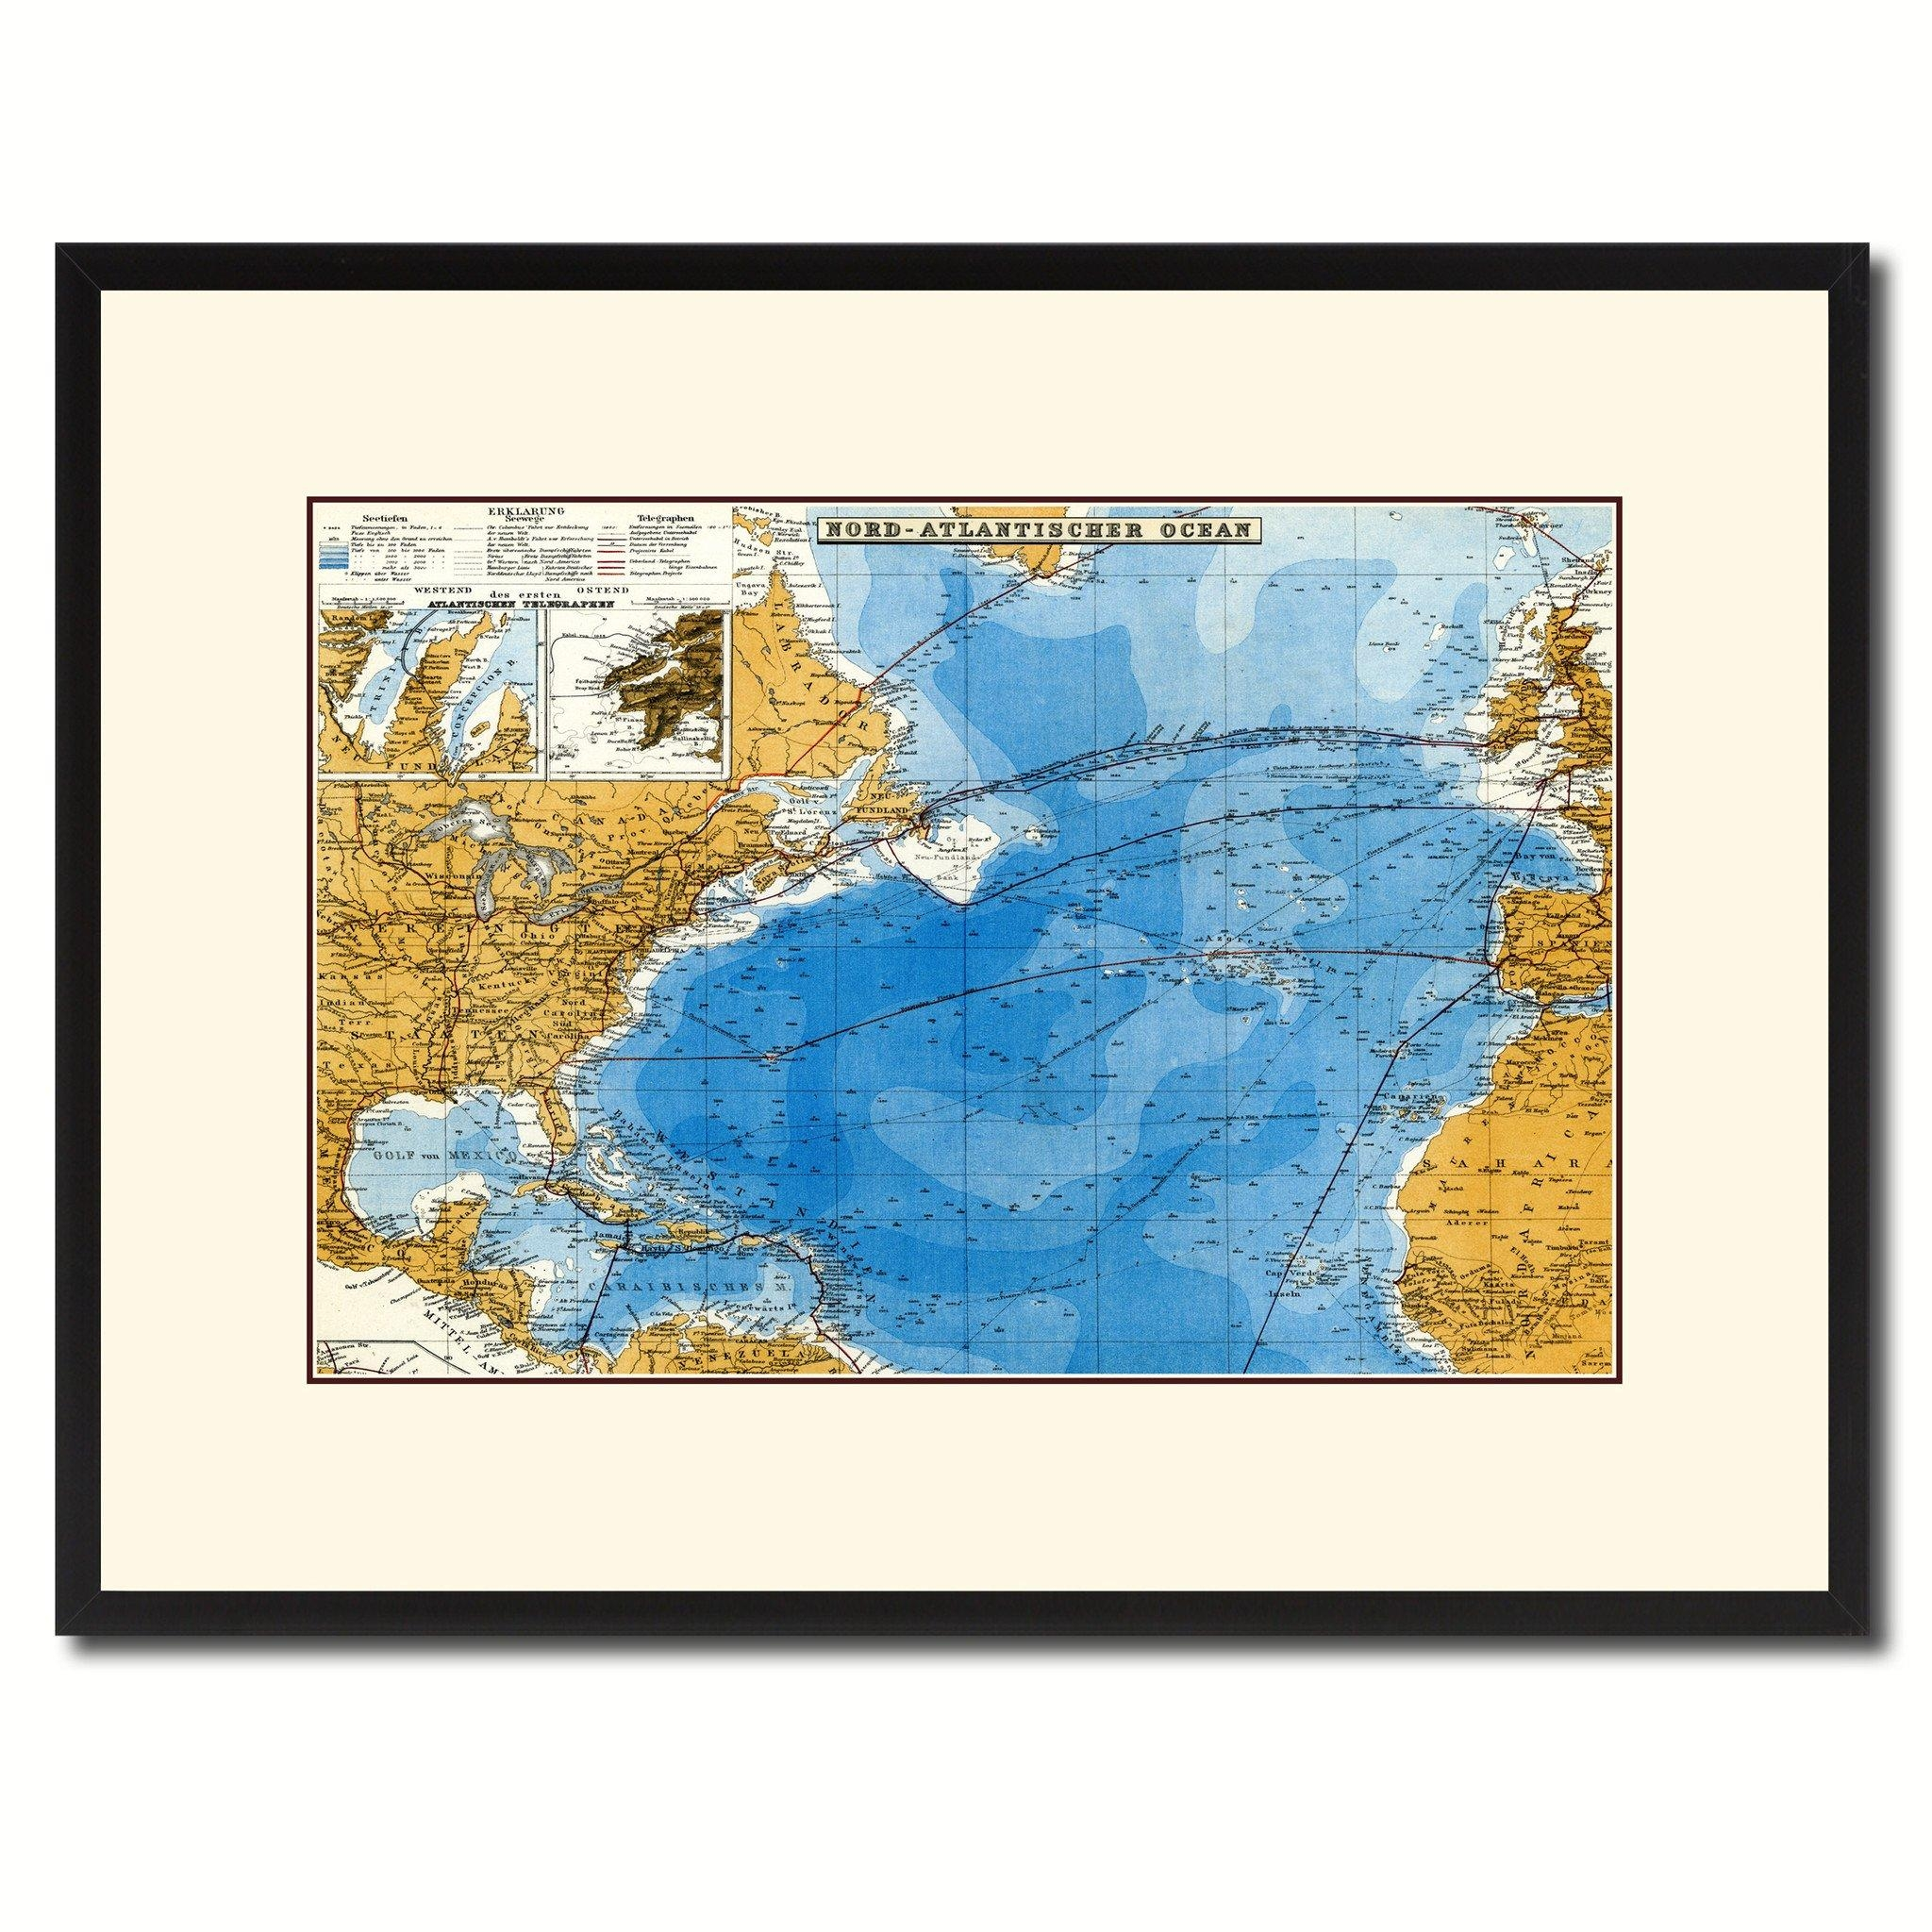 North Atlantic Telegraph Lines Stieler Vintage Antique Map Wall Throughout Vintage Map Wall Art (View 20 of 20)